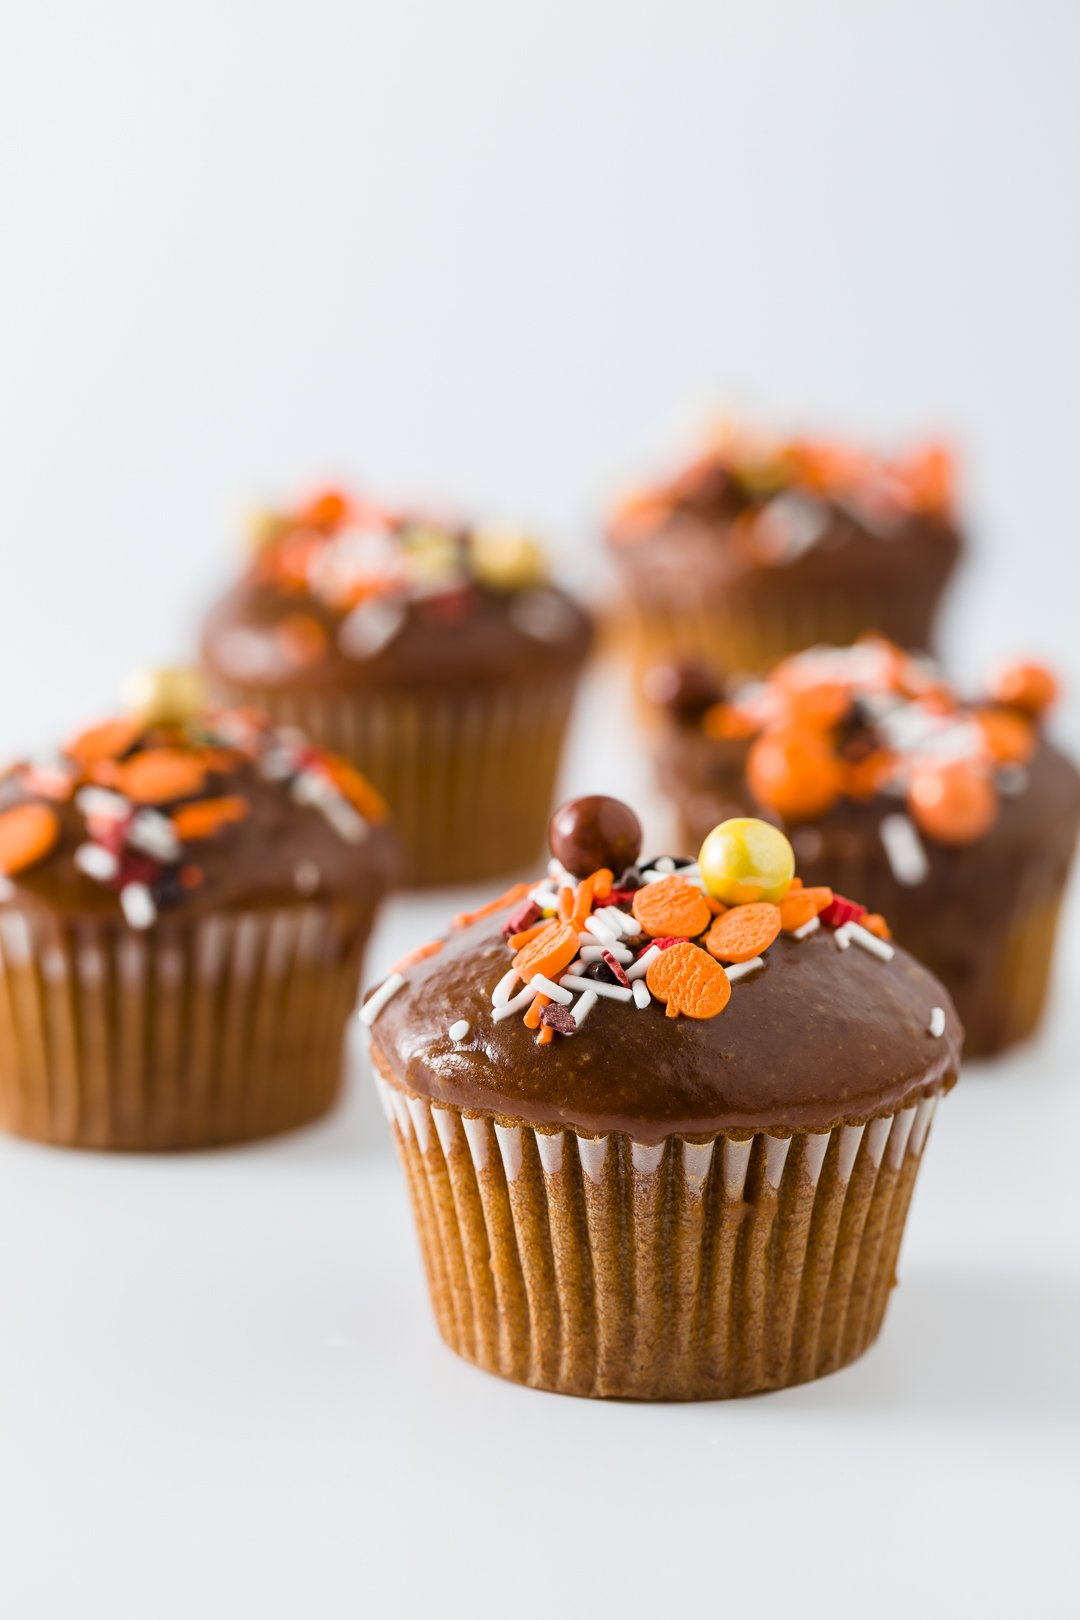 Pumpkin cupcakes frosted with apple butter caramel icing